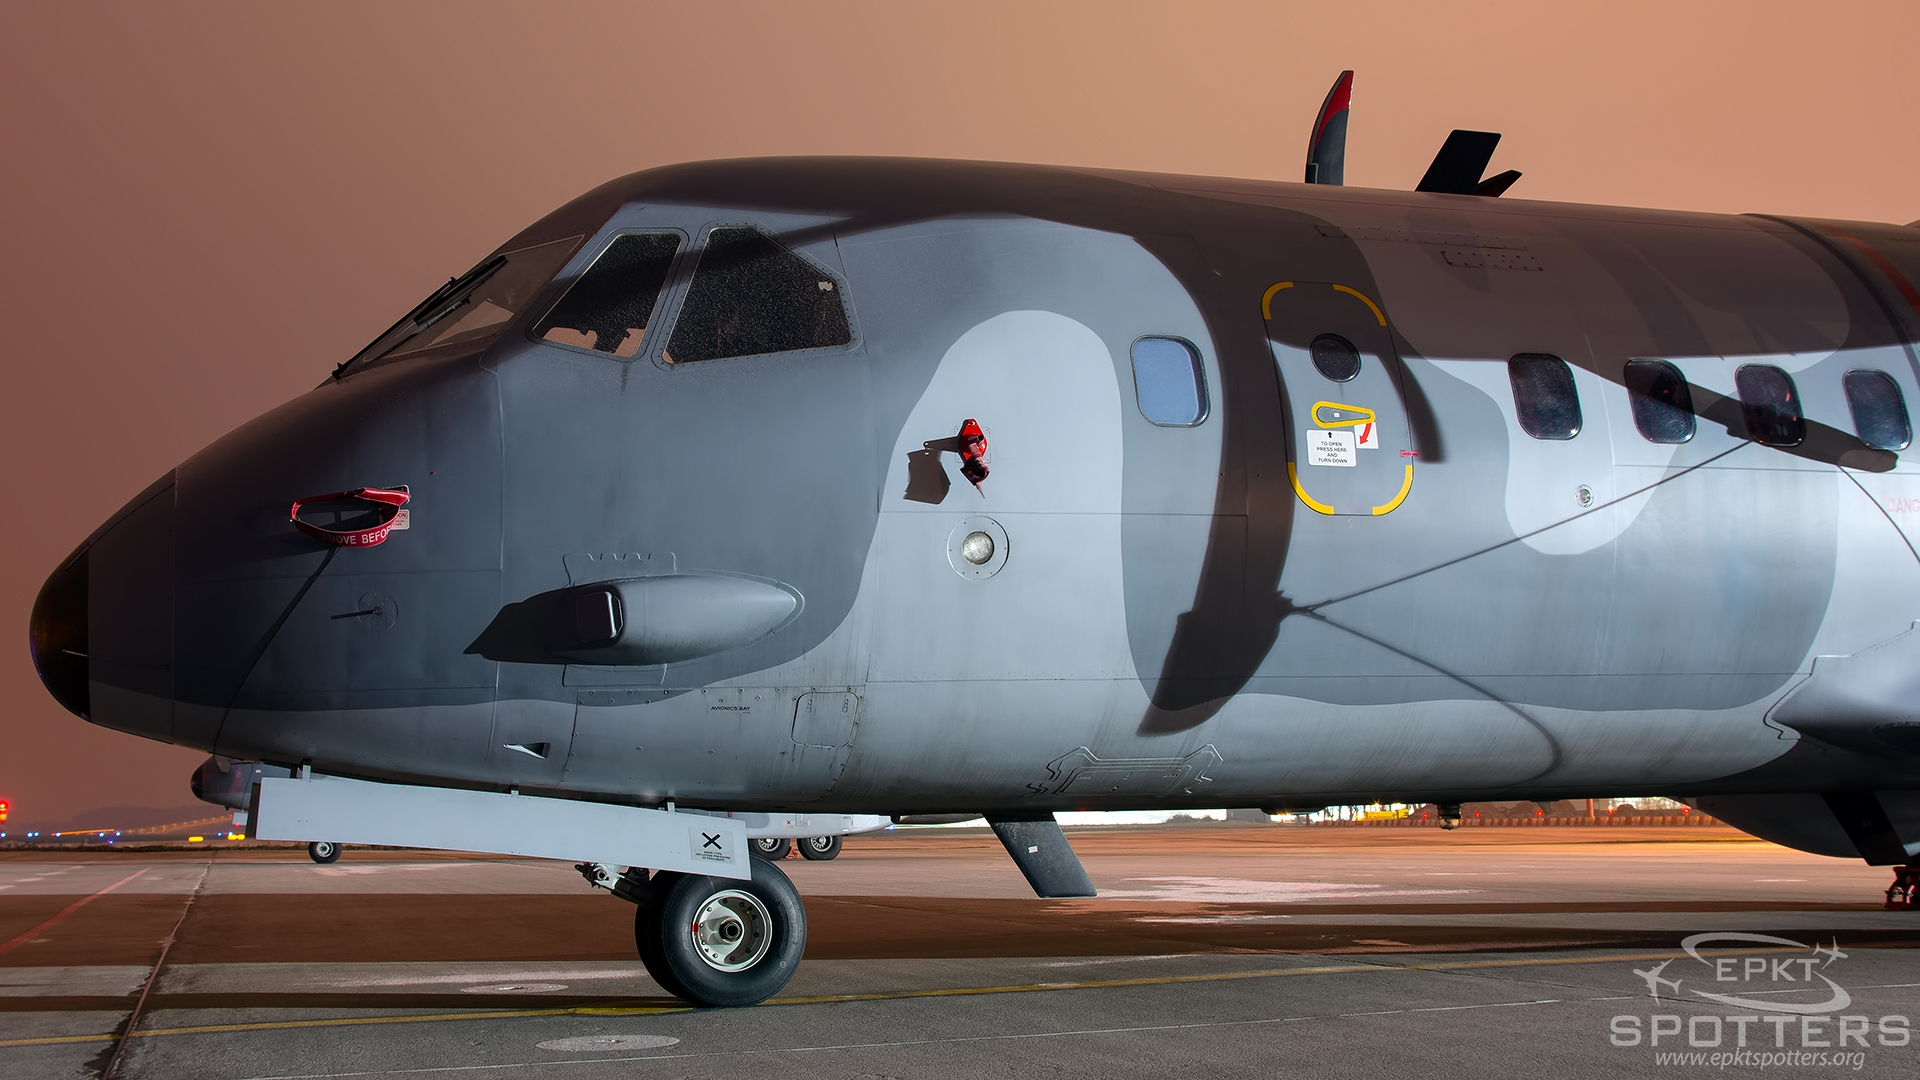 023 - CASA C-295 M (Poland - Air Force) / Balice - Krakow Poland [EPKK/KRK]